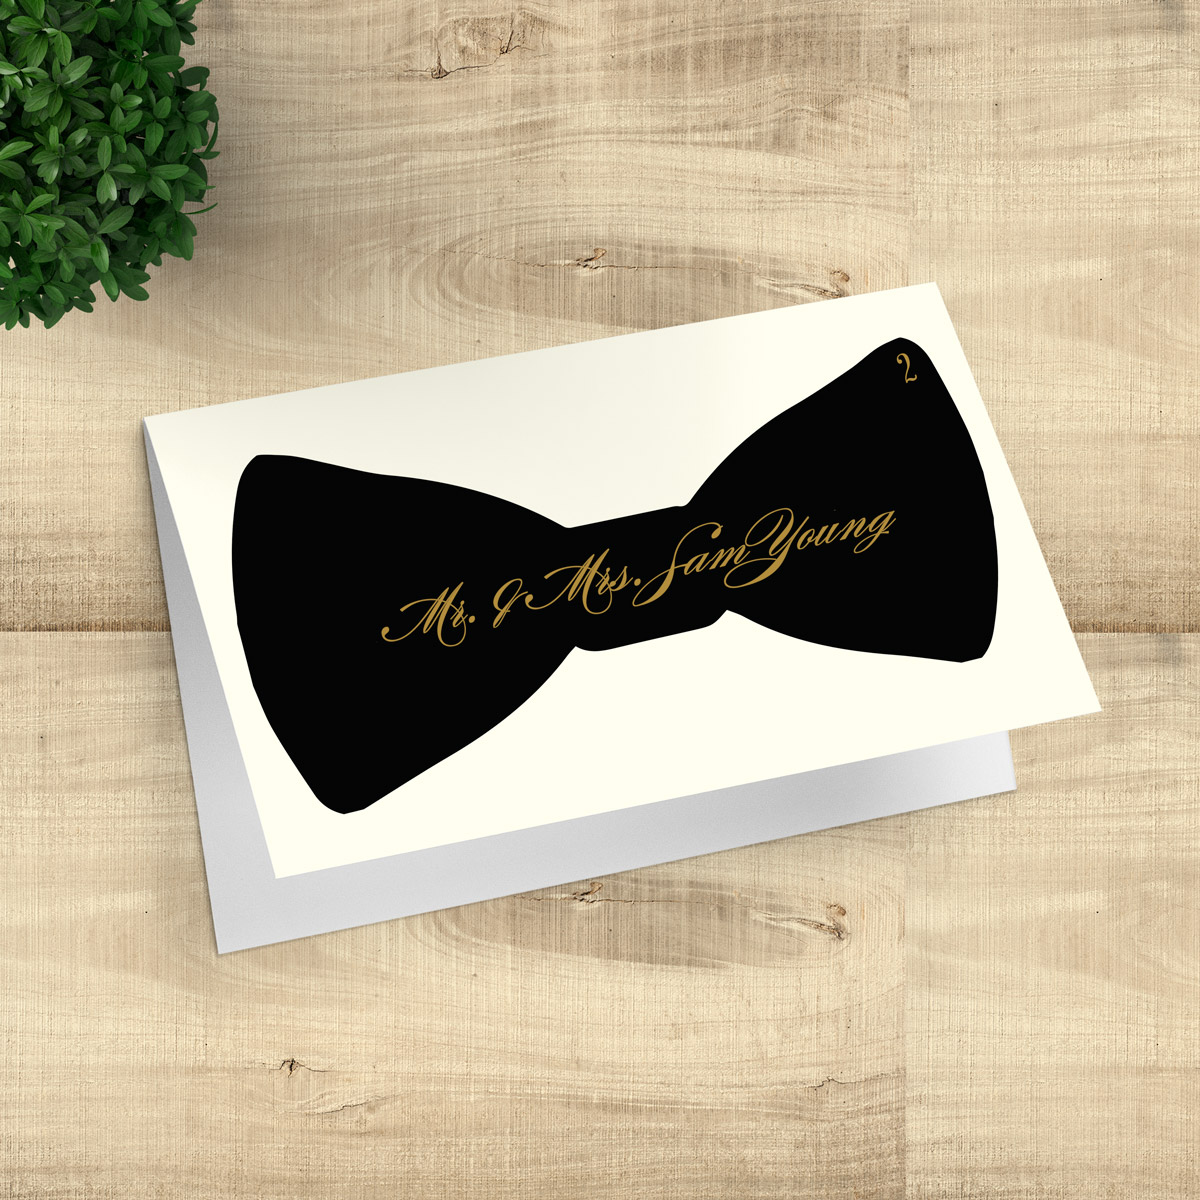 Bowtie Escort Cards with Faux Calligraphy - Black Bowtie - Pixie